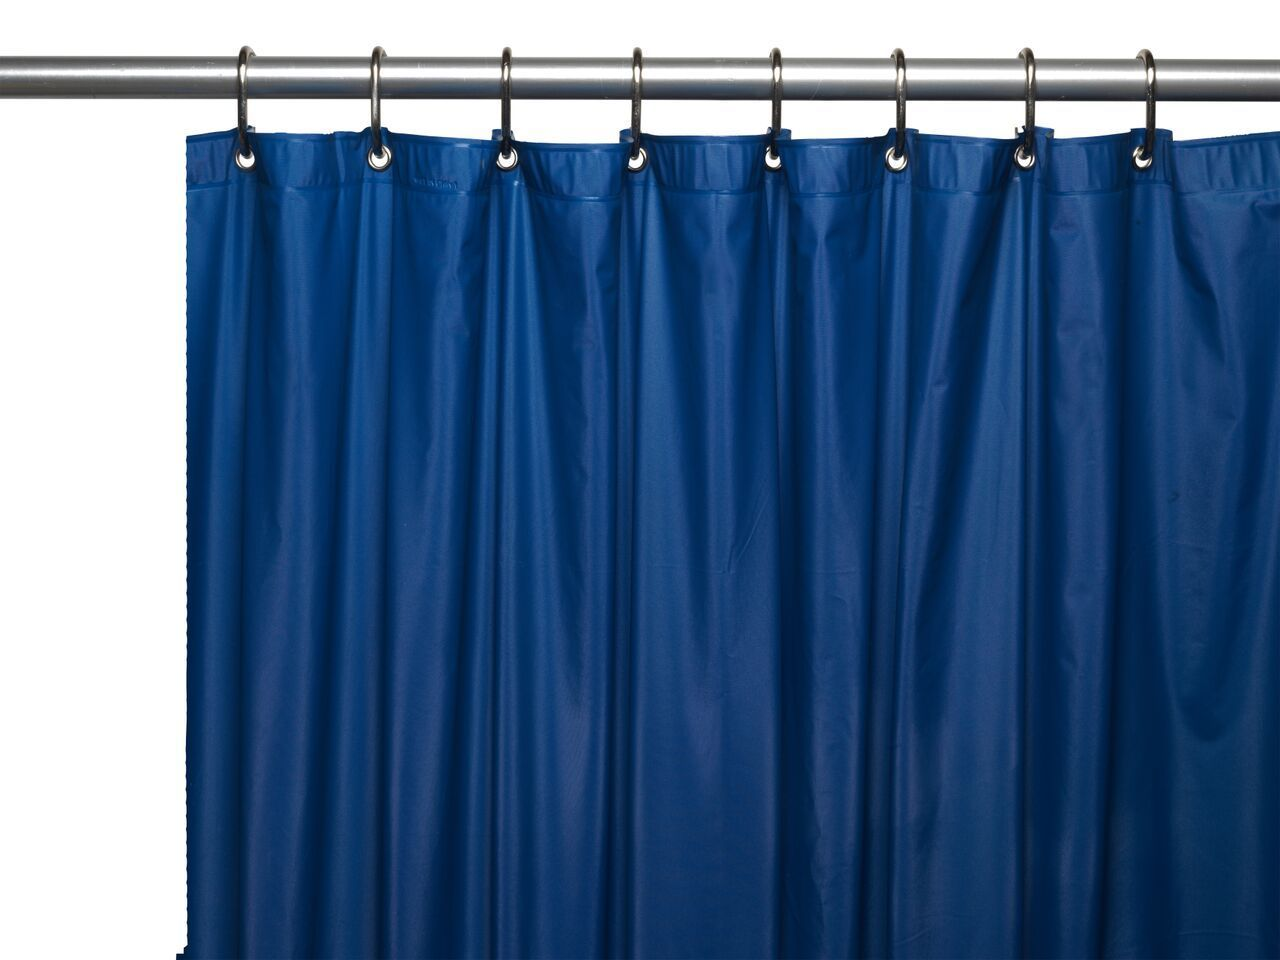 Navy Blue 8 Gauge Extra Heavy Vinyl Shower Curtain Liner With